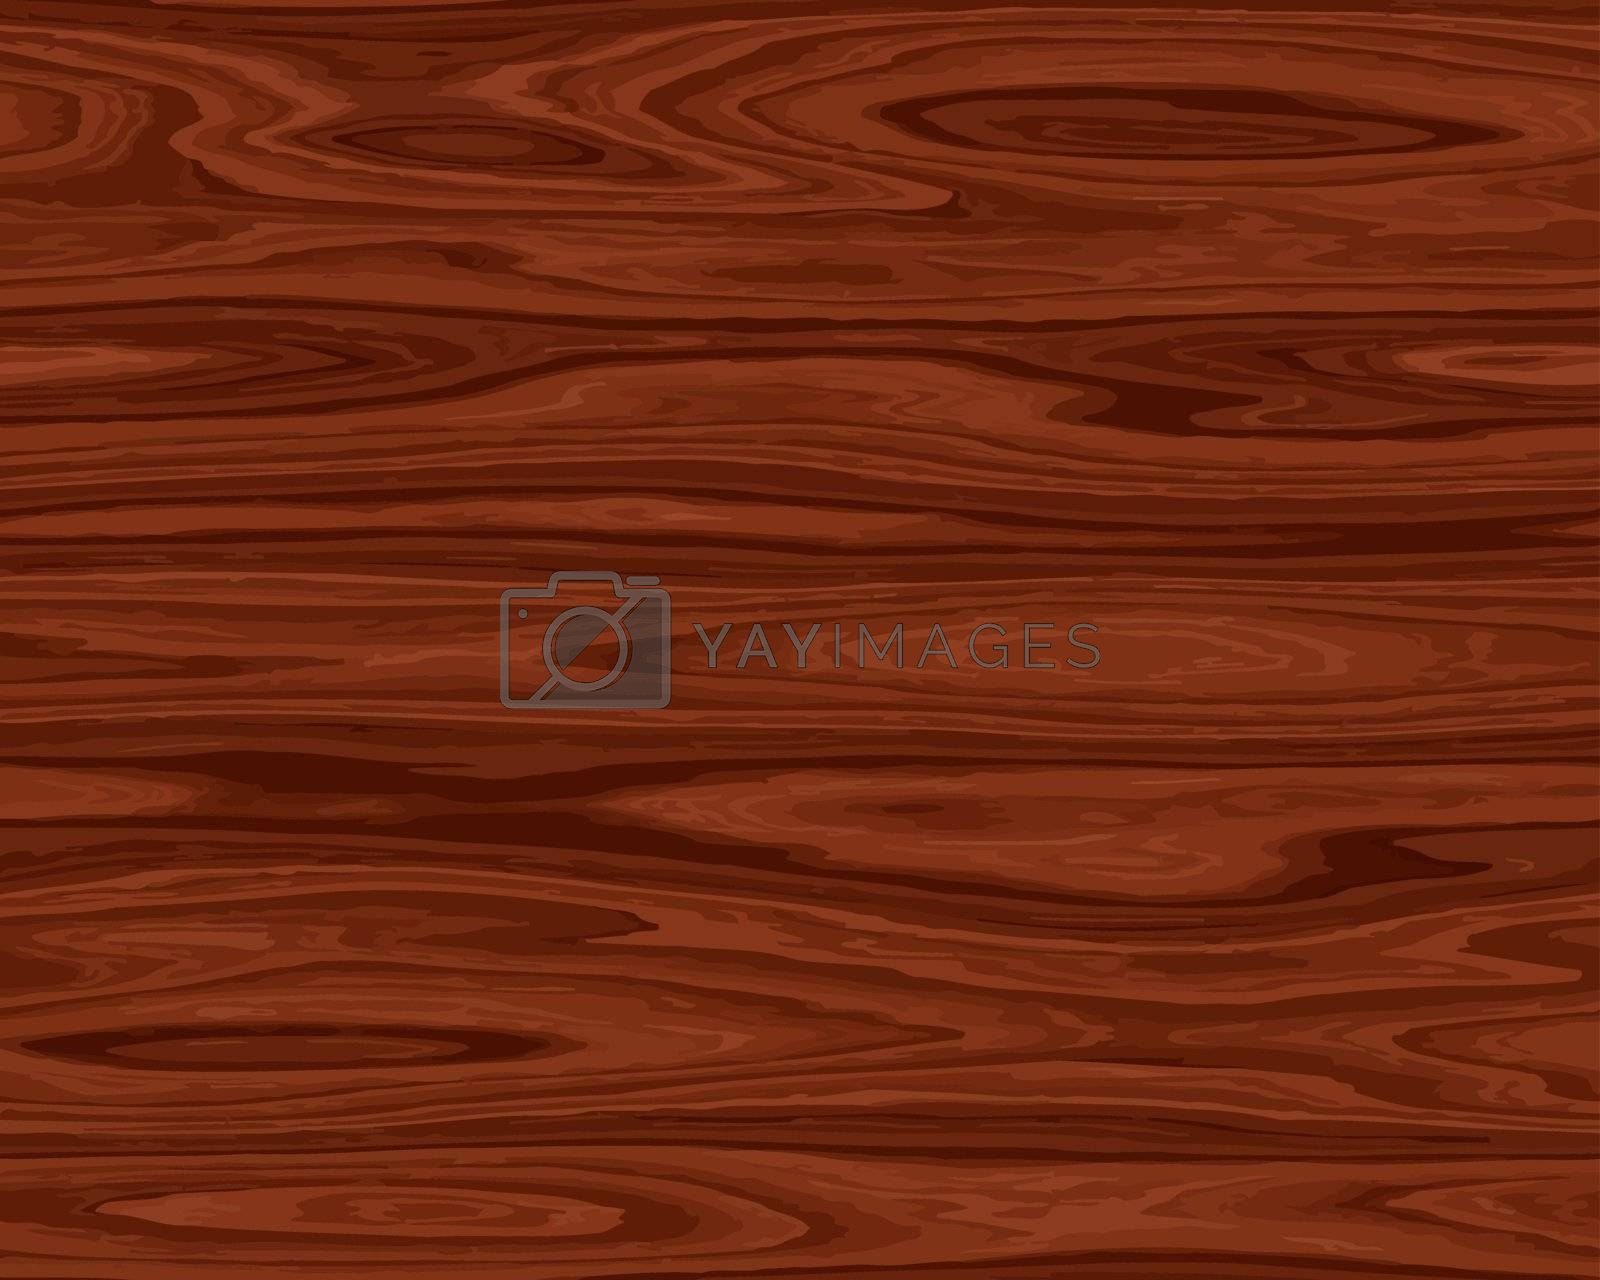 a large background texture of grainy and knotted red wood